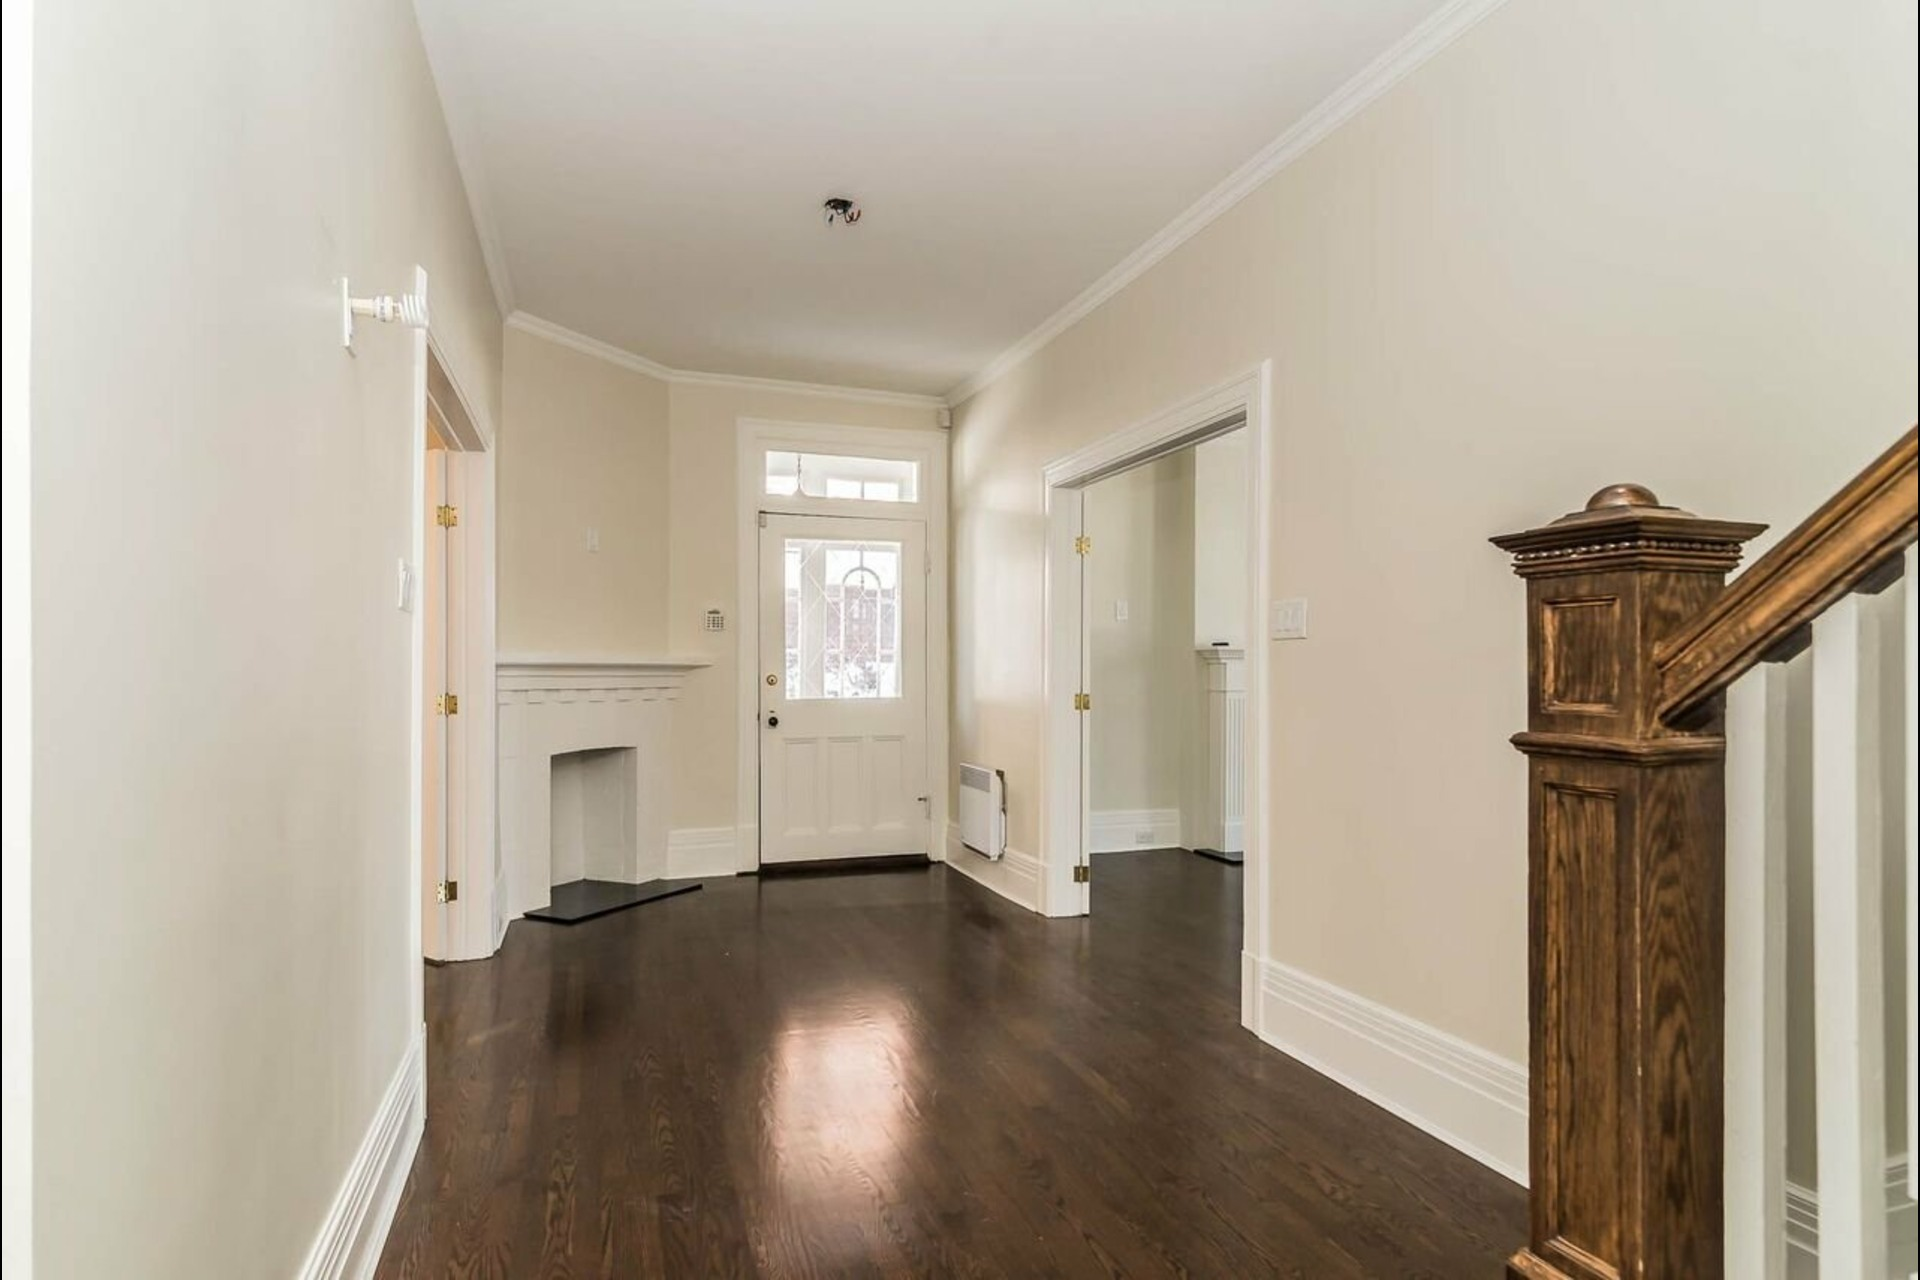 image 4 - House For rent Westmount - 8 rooms